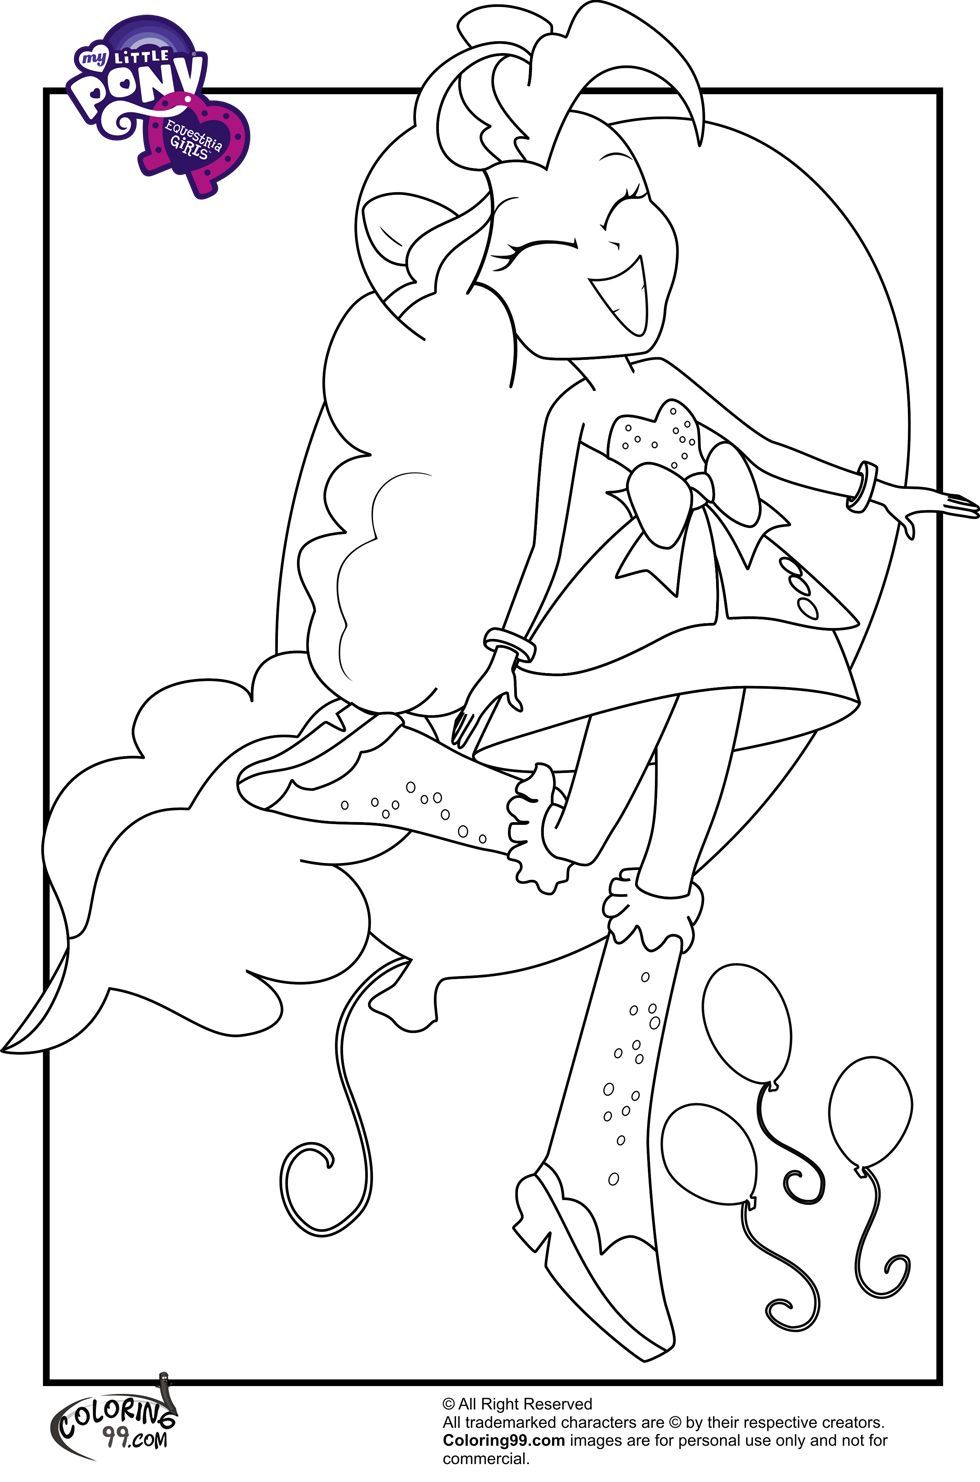 Pinkie pie equestria girl My little pony coloring